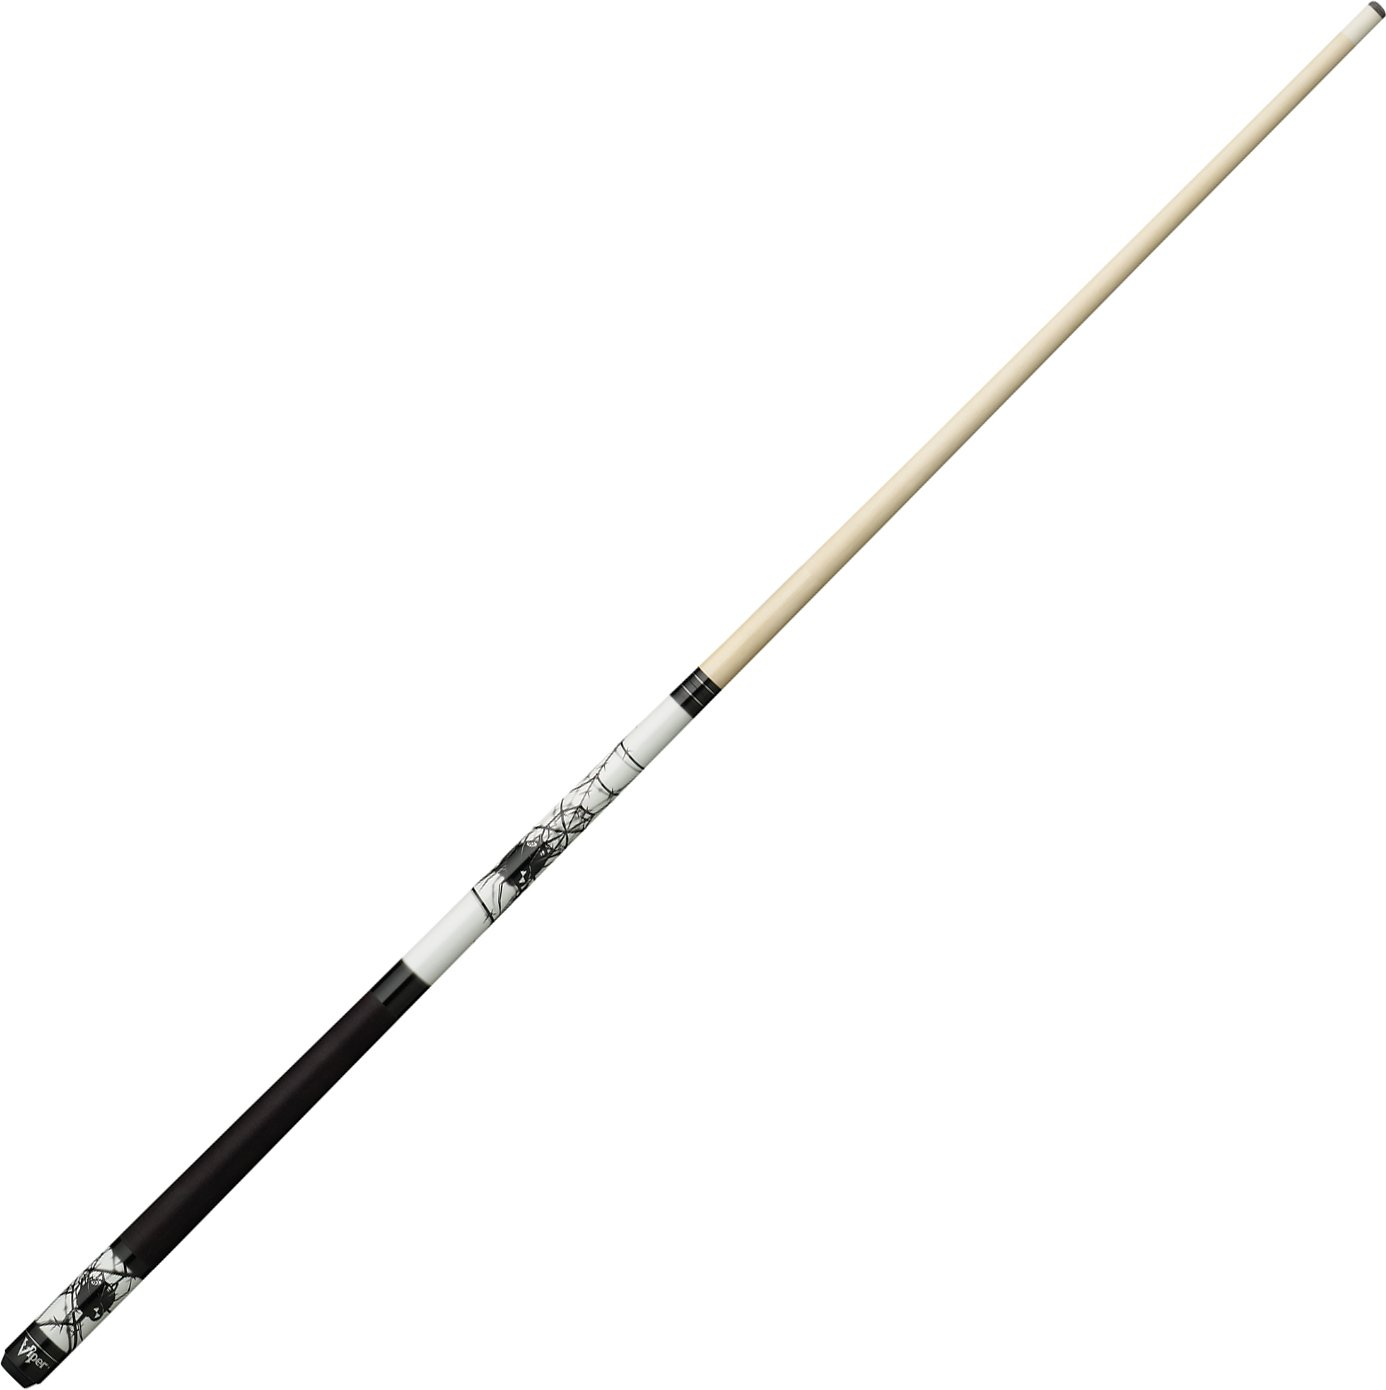 Viper Junior 48'' 2-Piece Billiard/Pool Cue, Spider, 16 Ounce by Viper by GLD Products (Image #2)